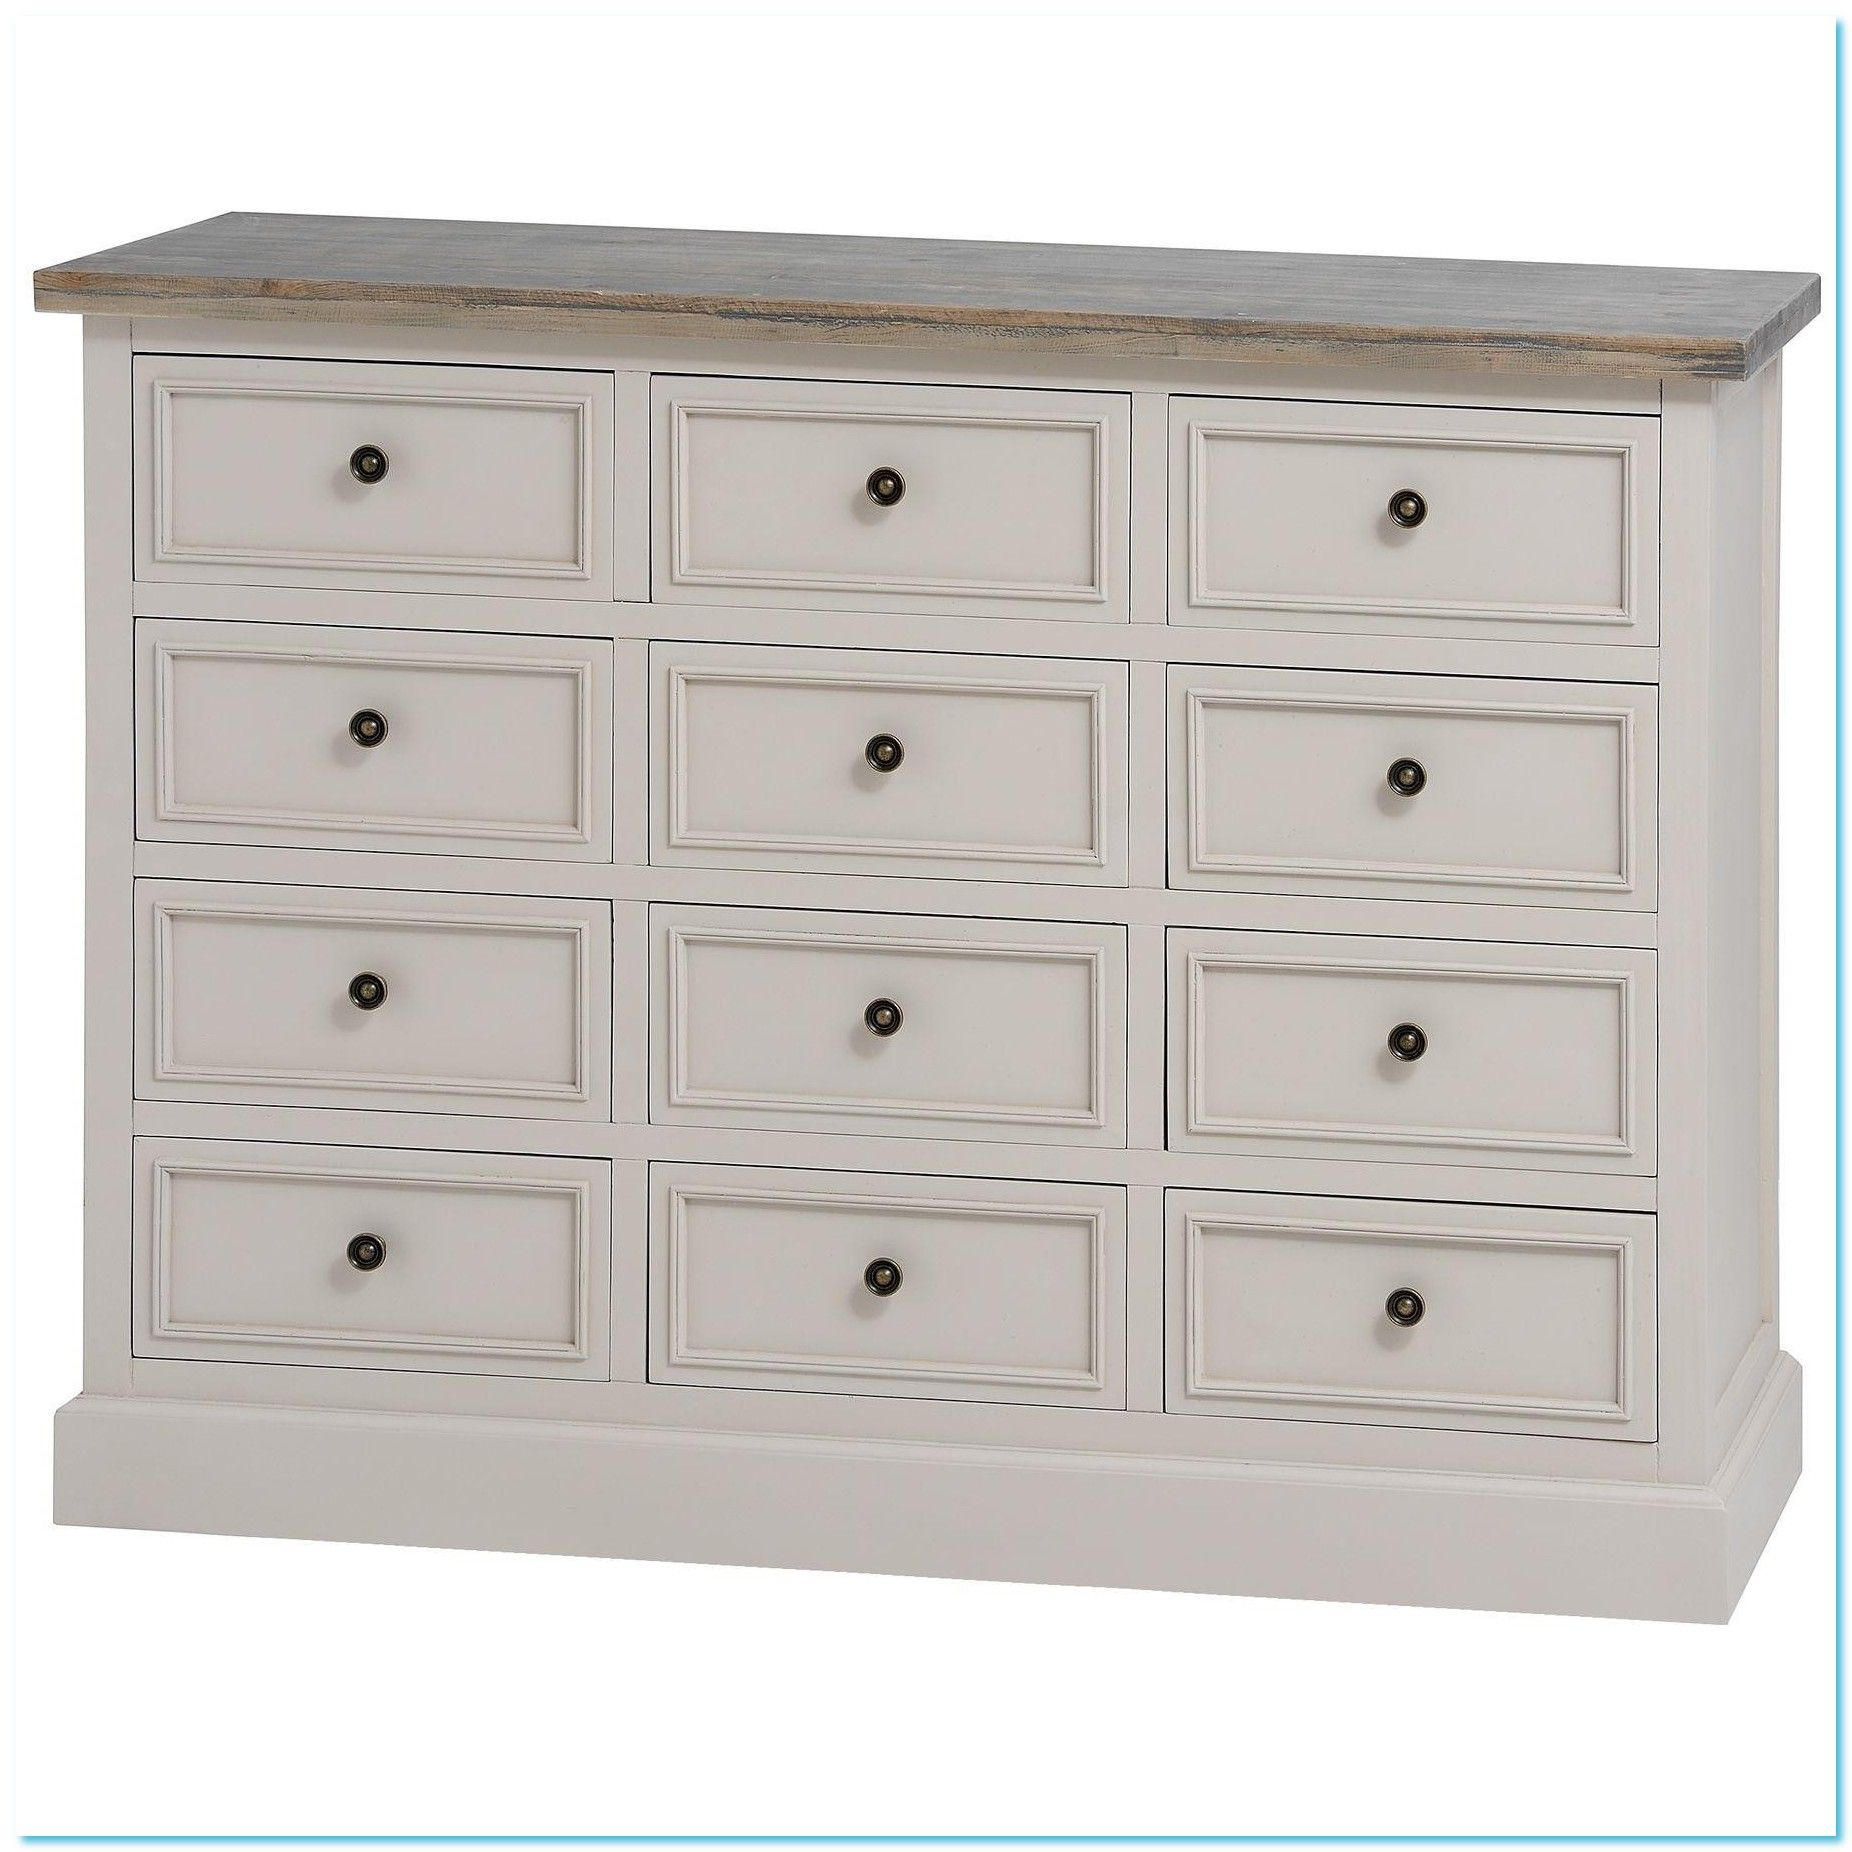 63 Reference Of 12 Drawer Chest Bedroom In 2020 White Cabinets White Countertops Living Room Decor Inspiration Drawers [ 1852 x 1852 Pixel ]